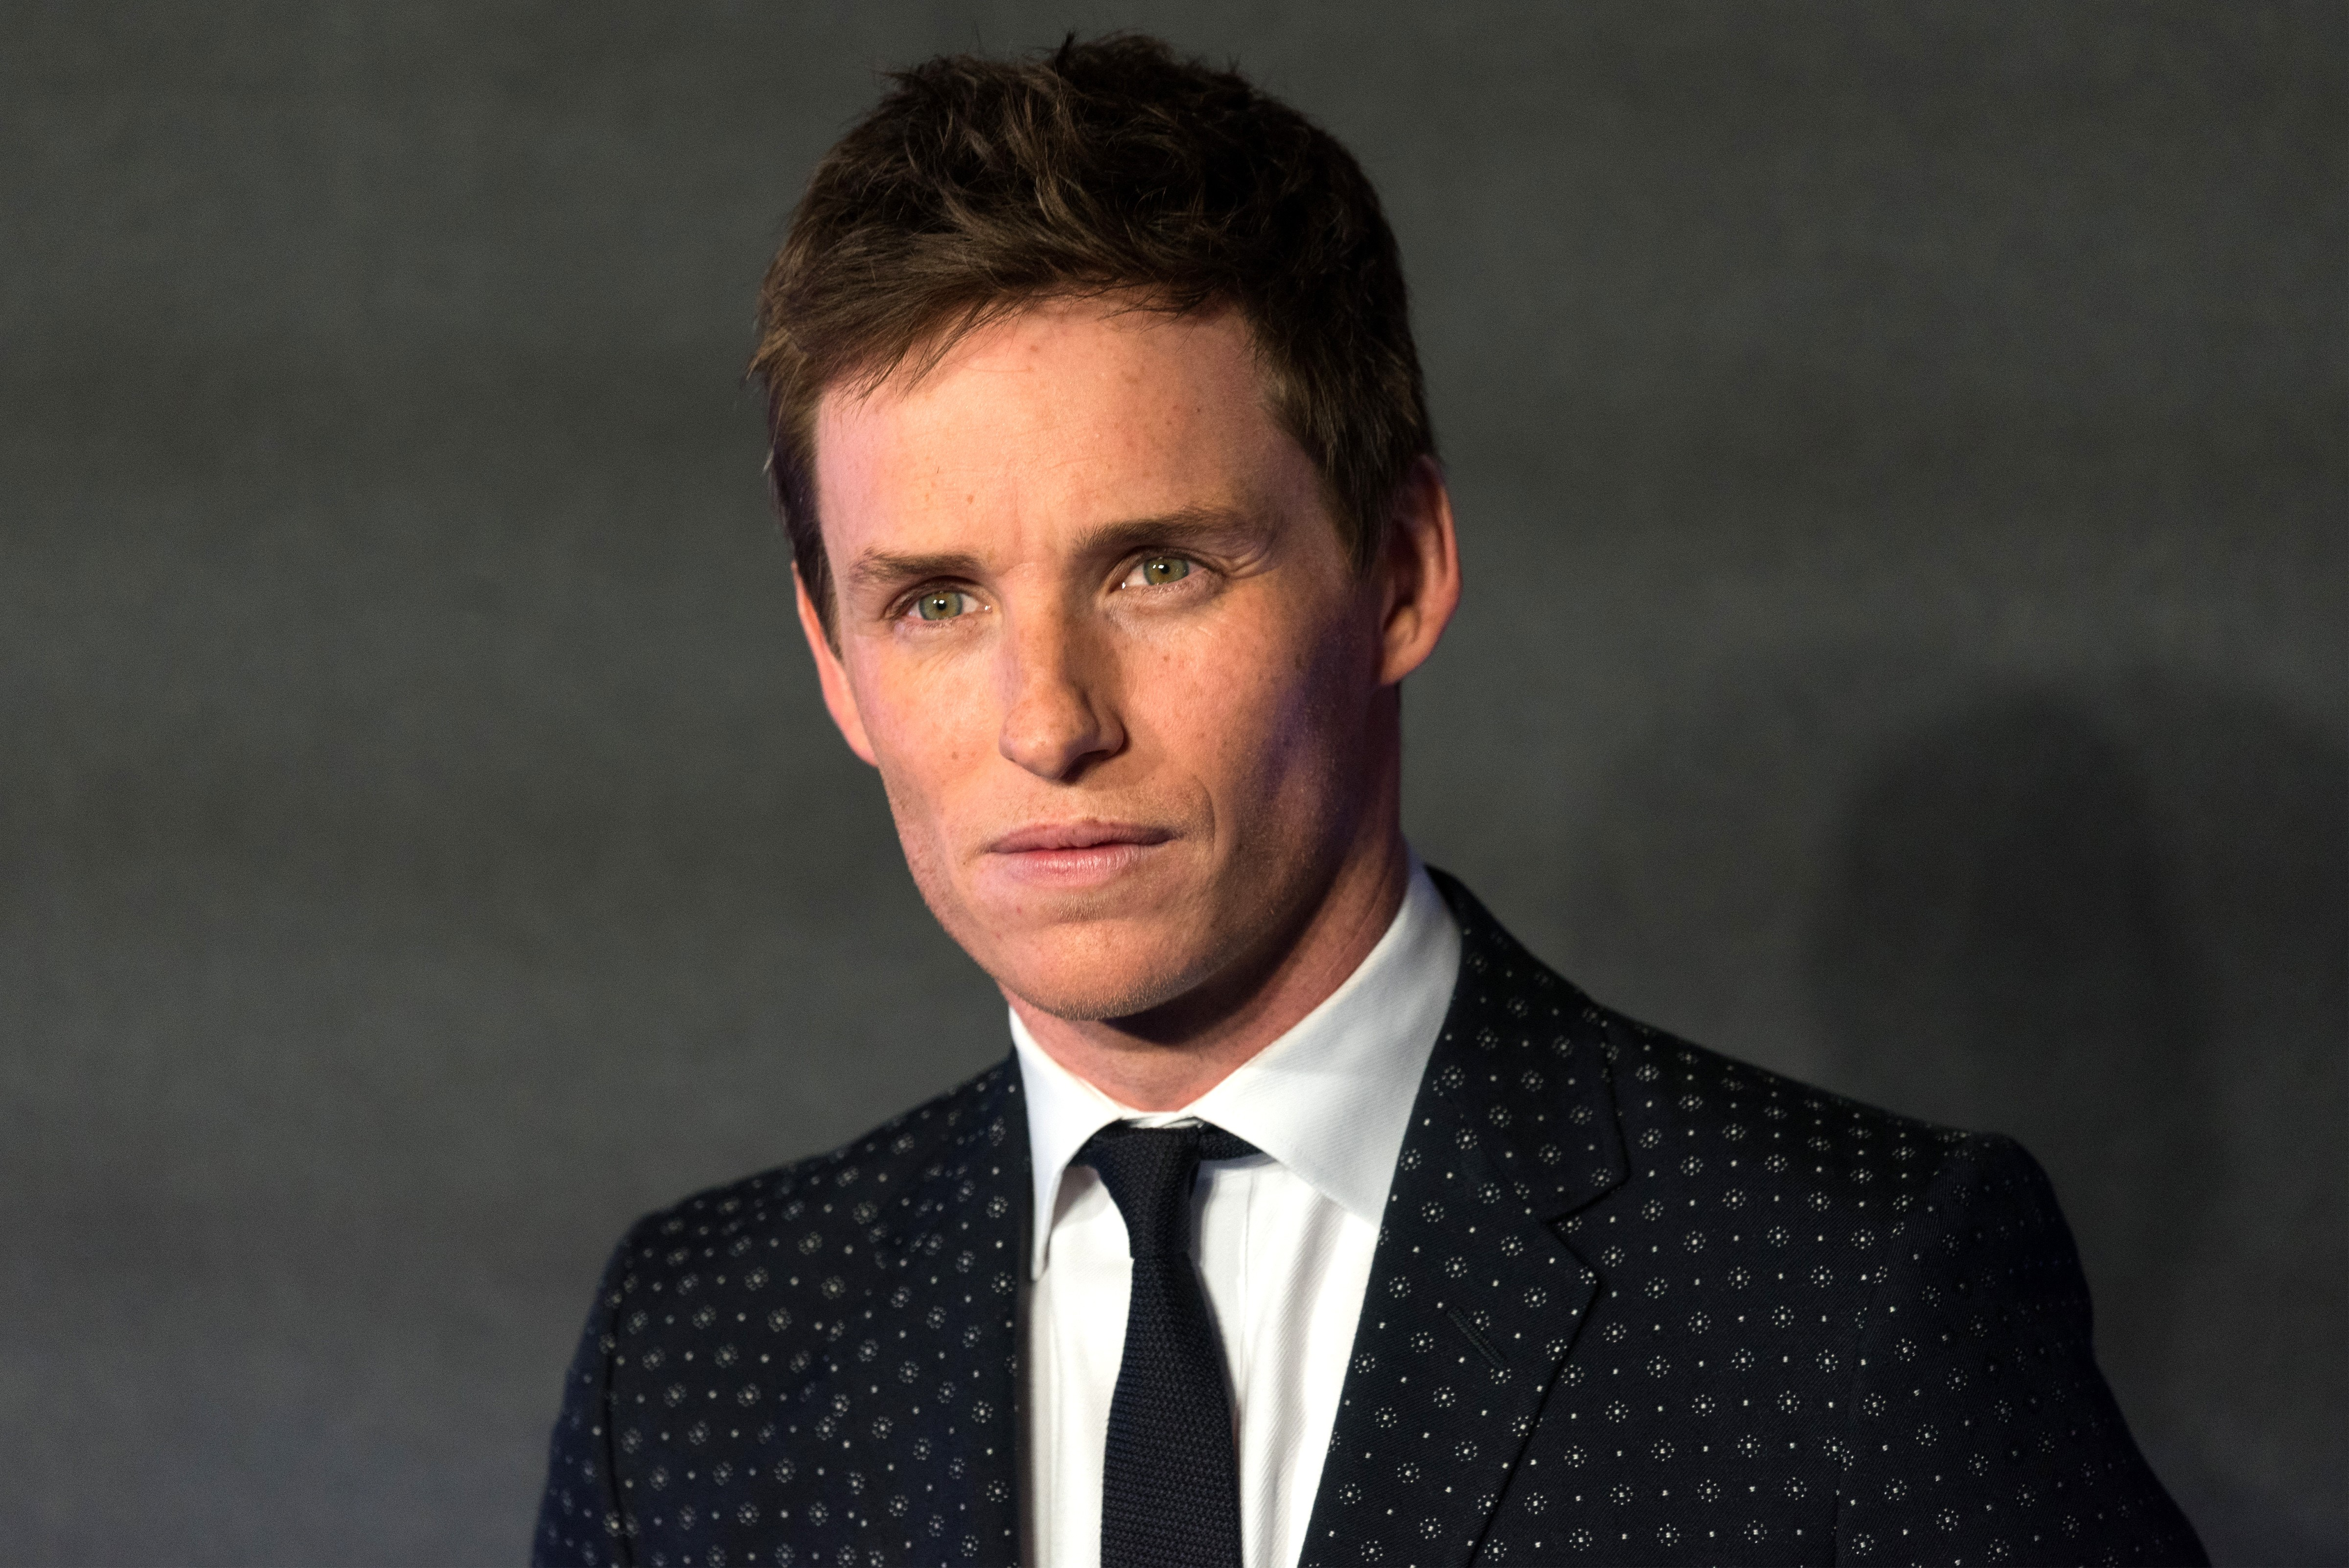 Eddie Redmayne just VERY clearly responded to rumors he's dating Taylor Swift